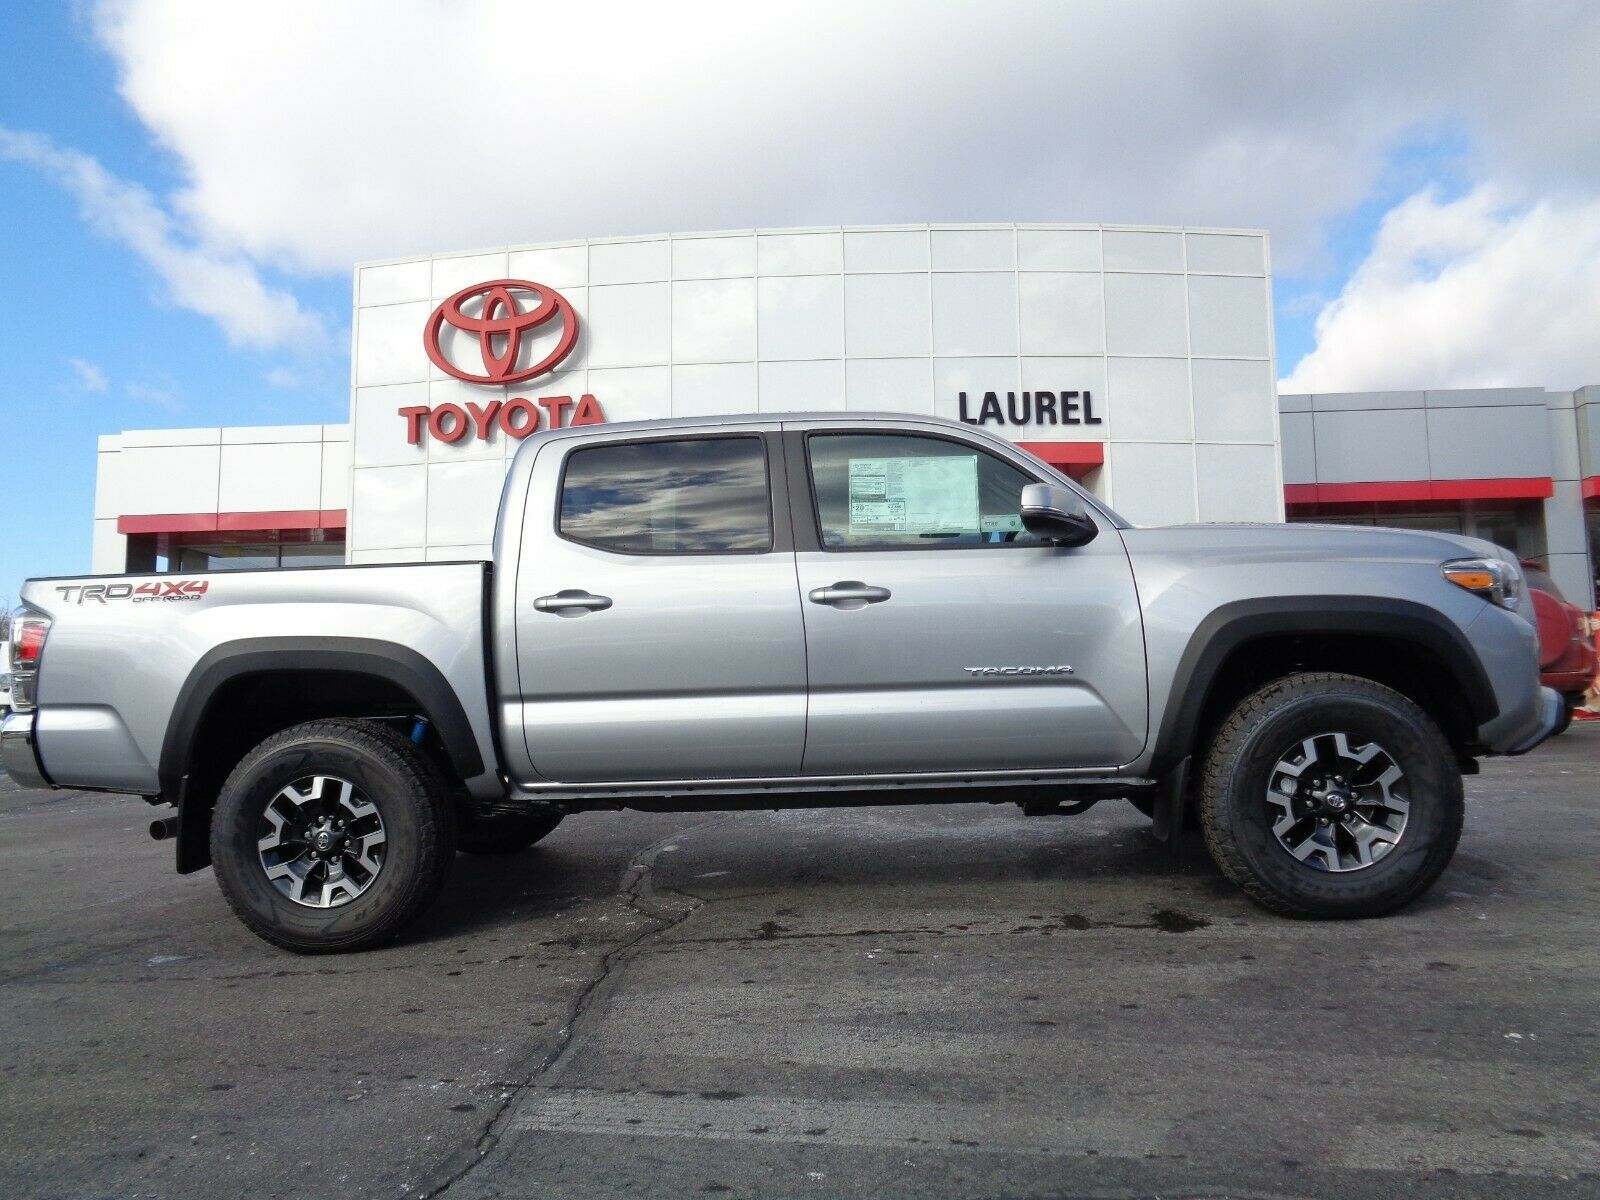 Toyota Christmas Deals Used 2020 Used 2020 Toyota Tacoma New 2020 Tacoma Double Cab 4×4 TRD Silver